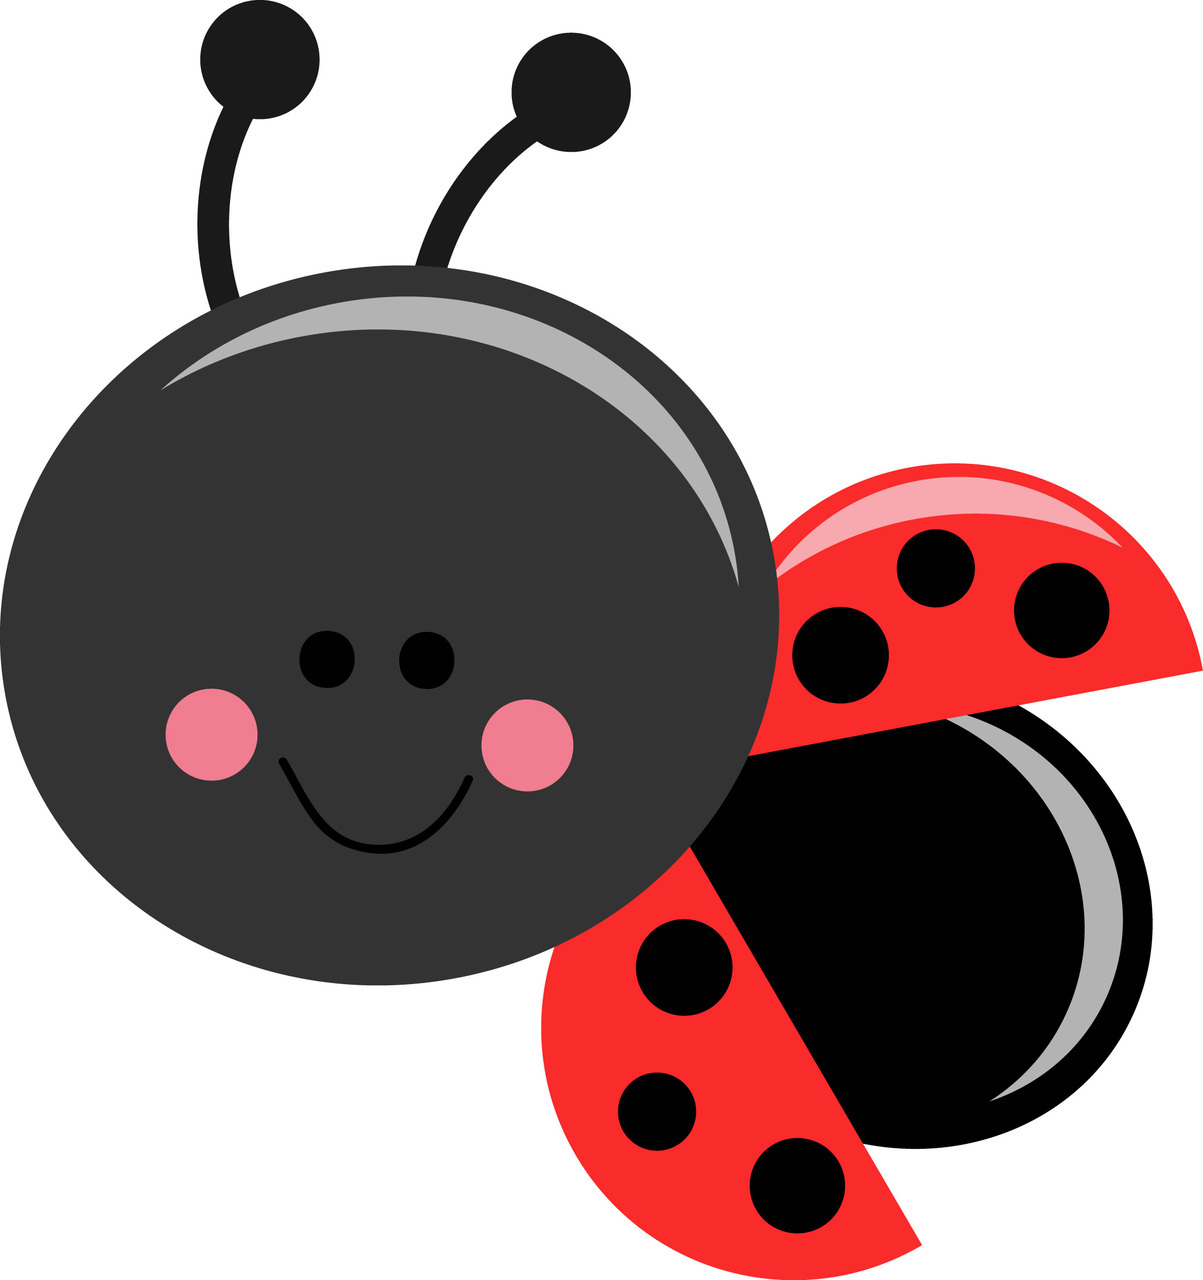 hight resolution of 1203x1280 bugs clipart baby